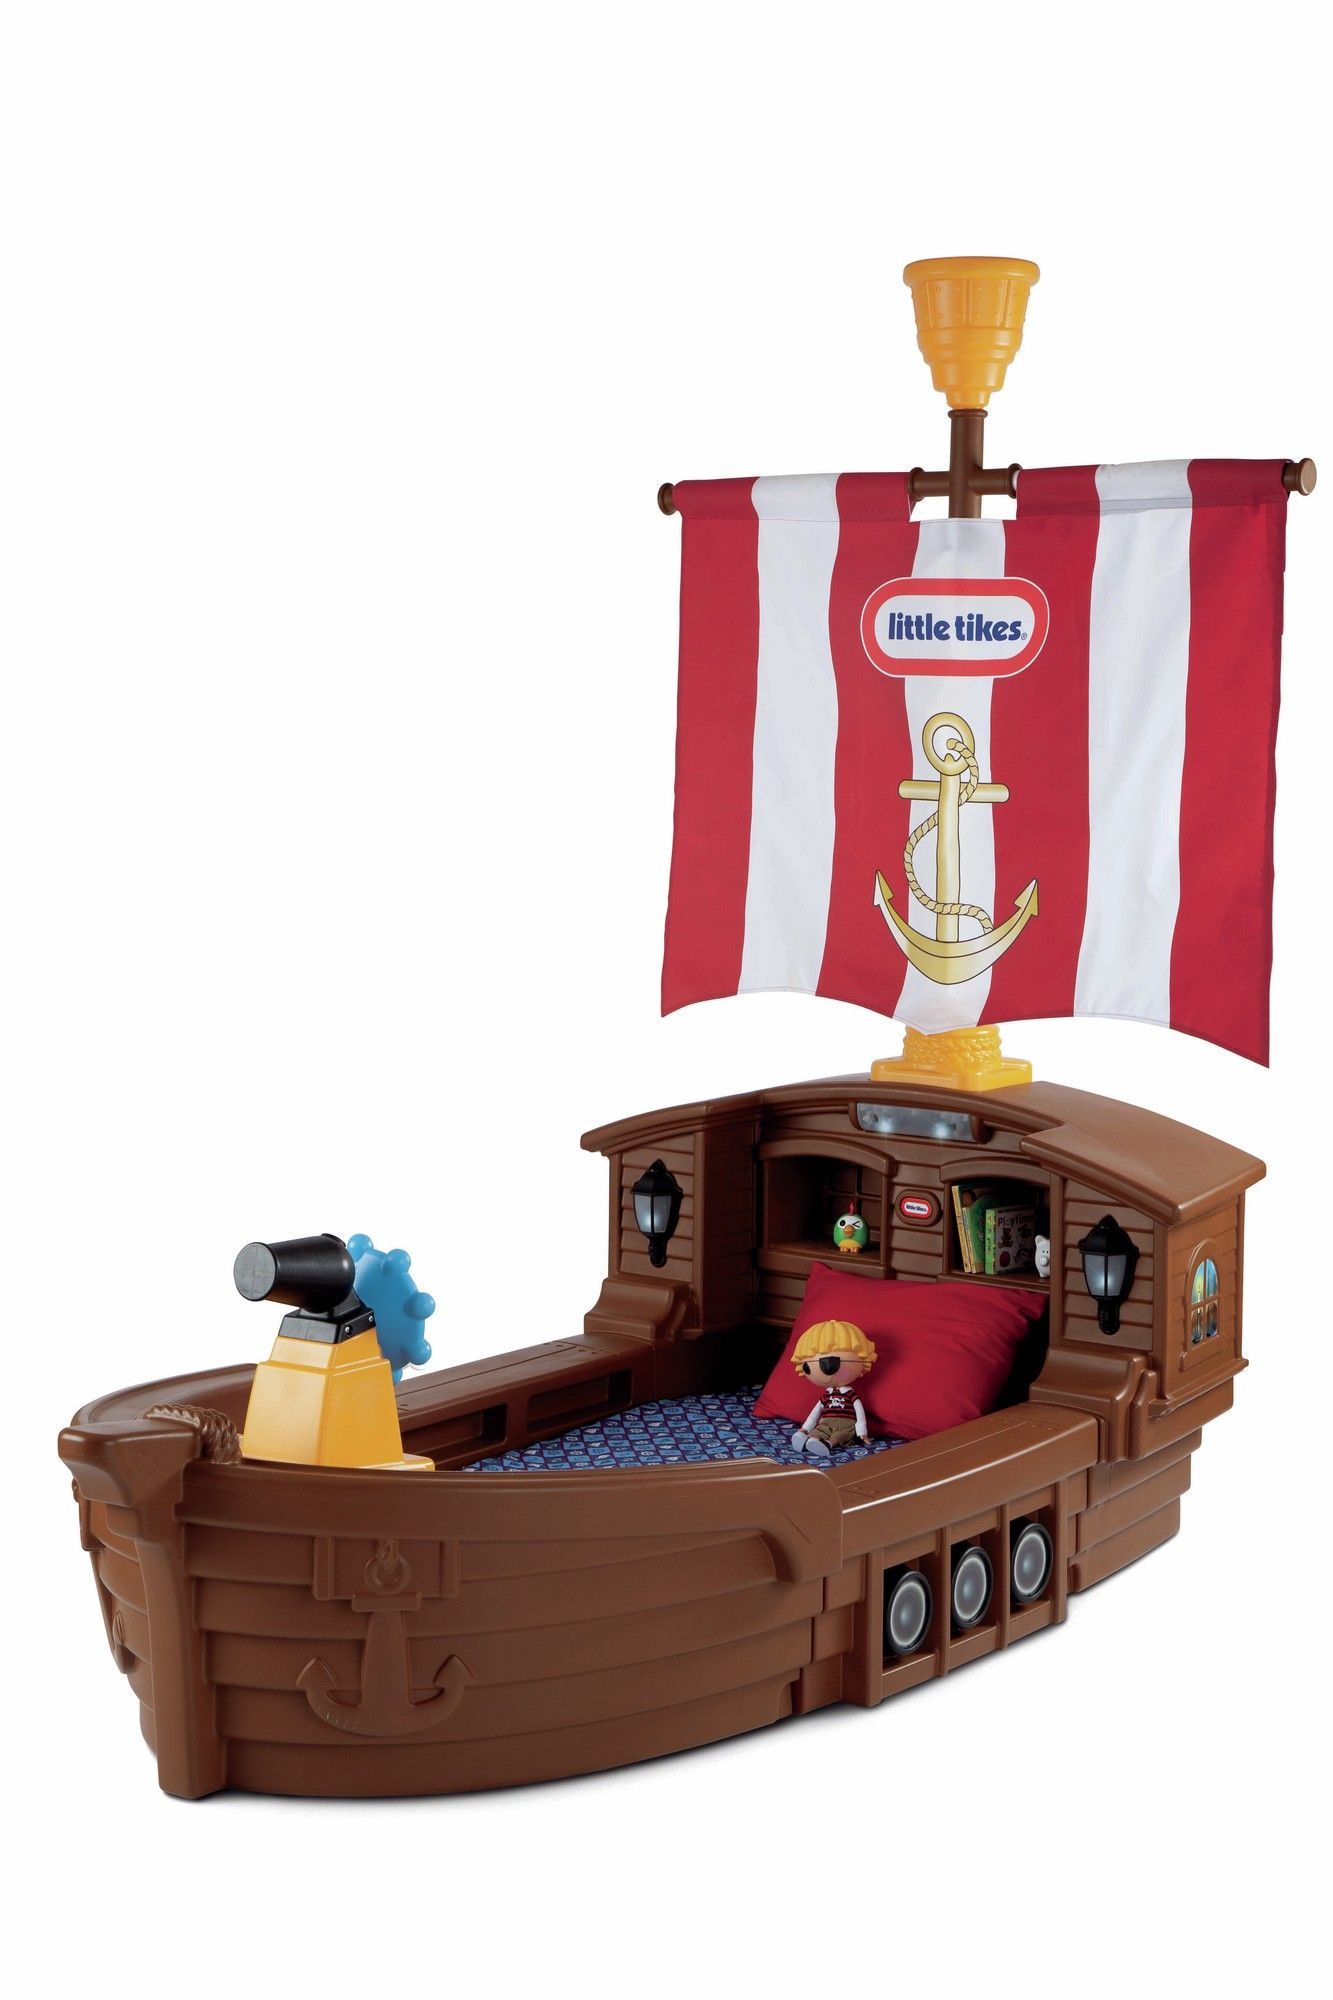 Pirate Ship Toddler Bed Wayfair Pirate Toddler Bed Little